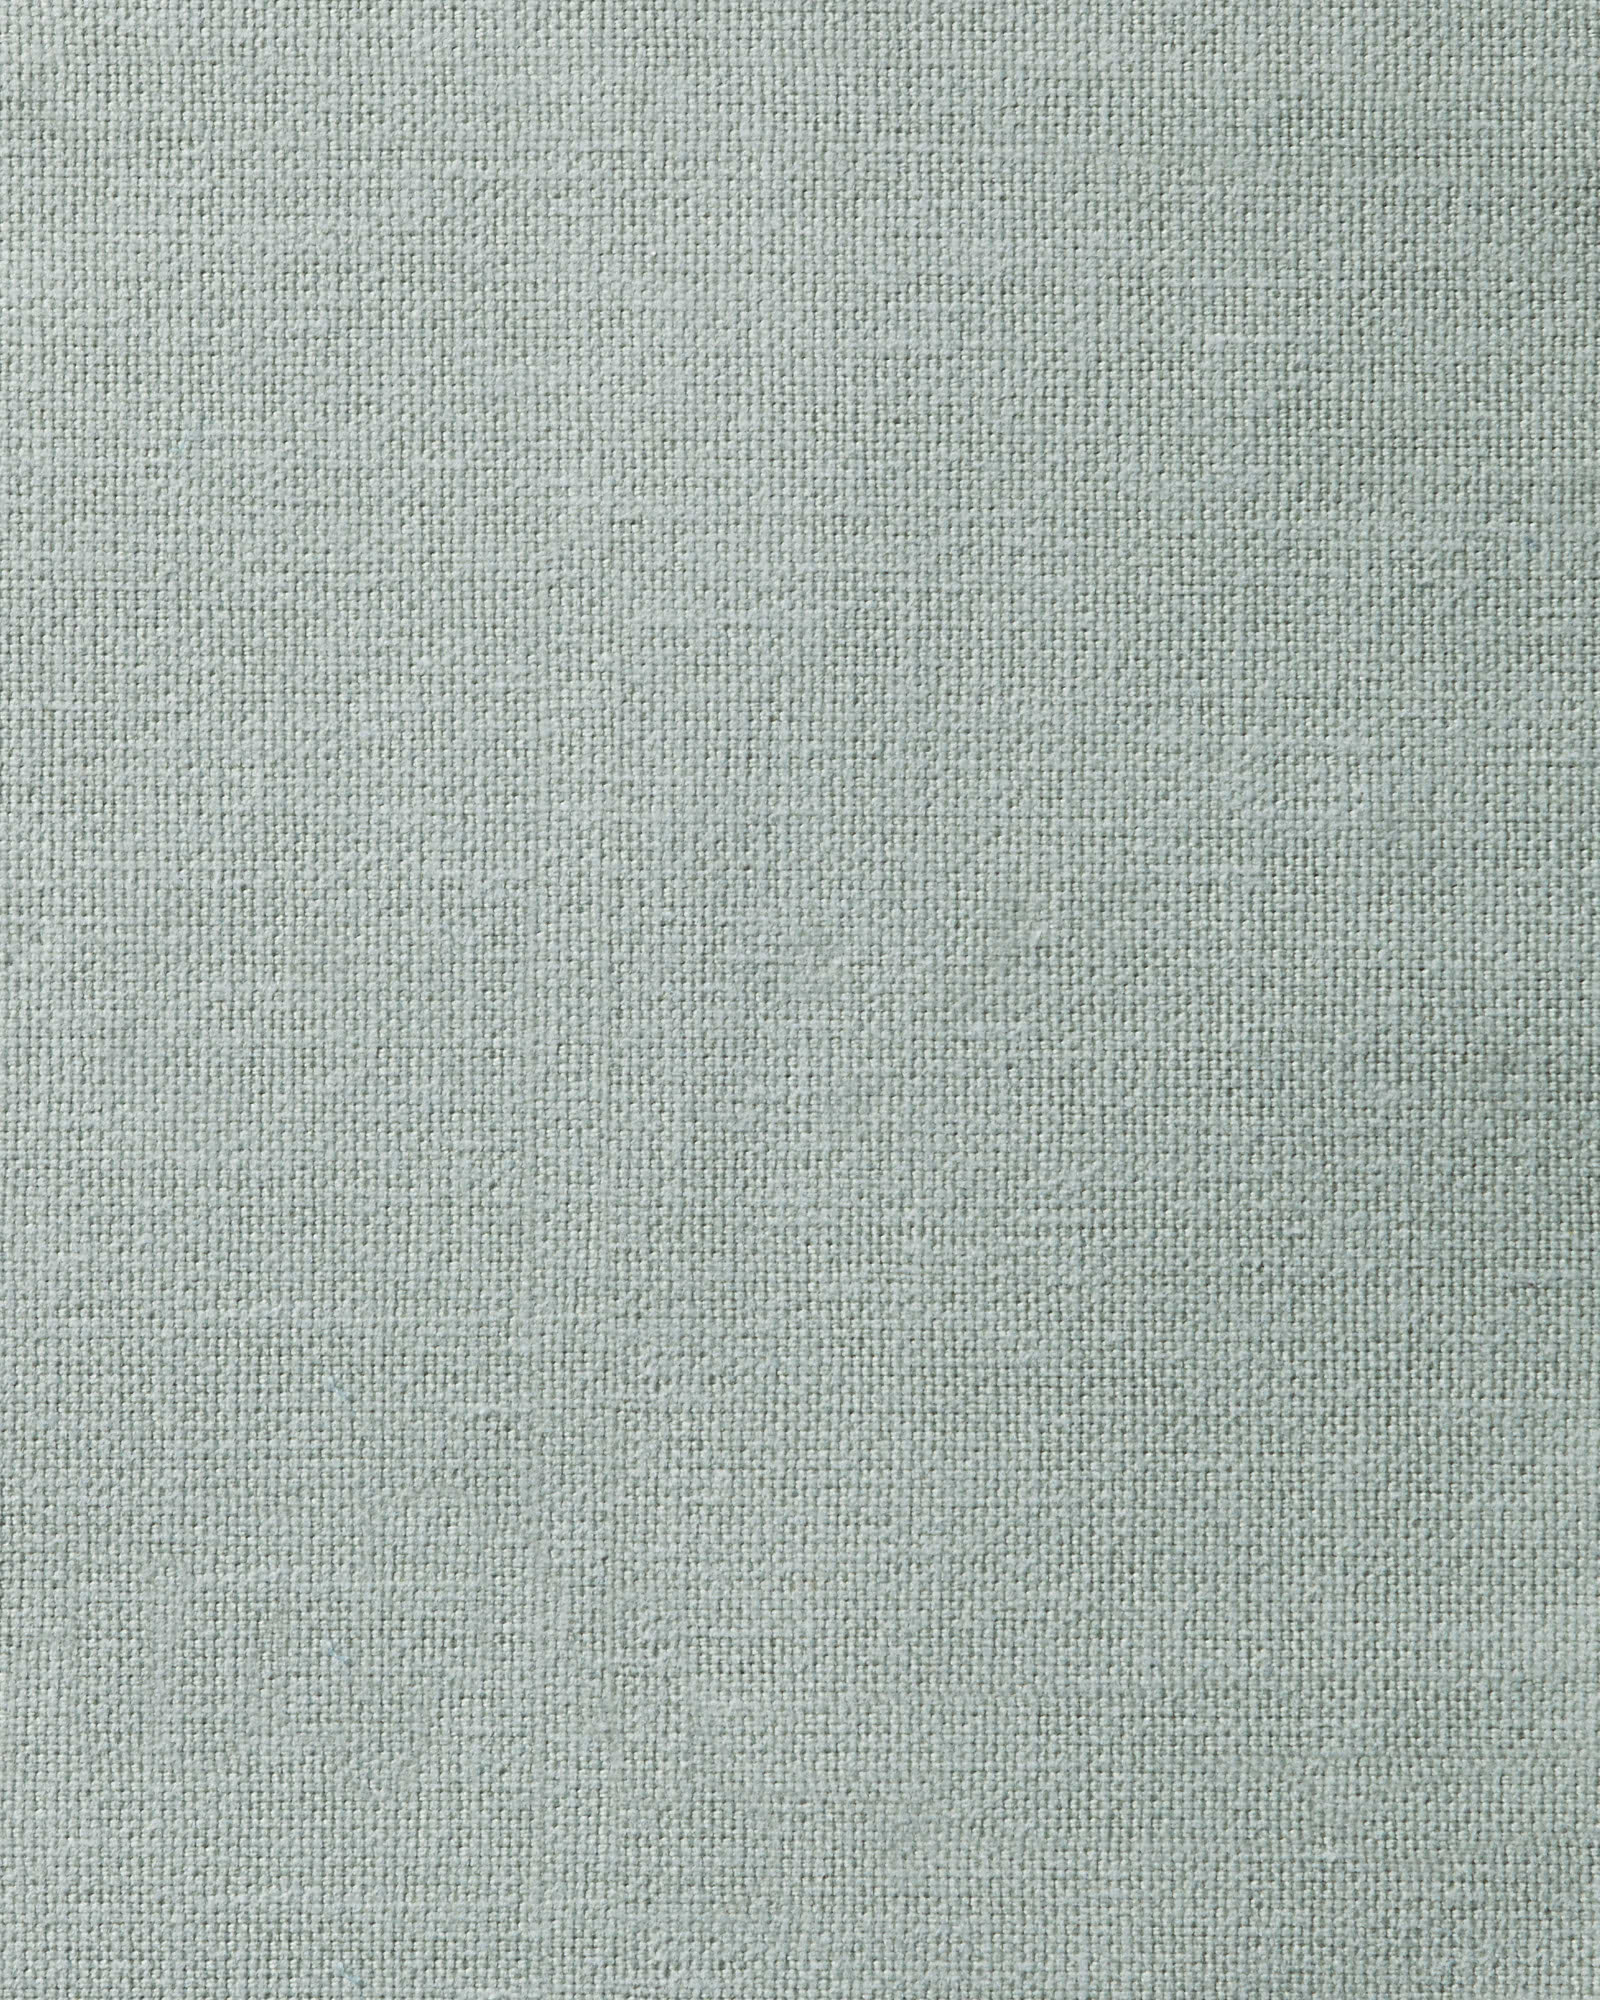 Brushed Cotton Canvas, Horizon